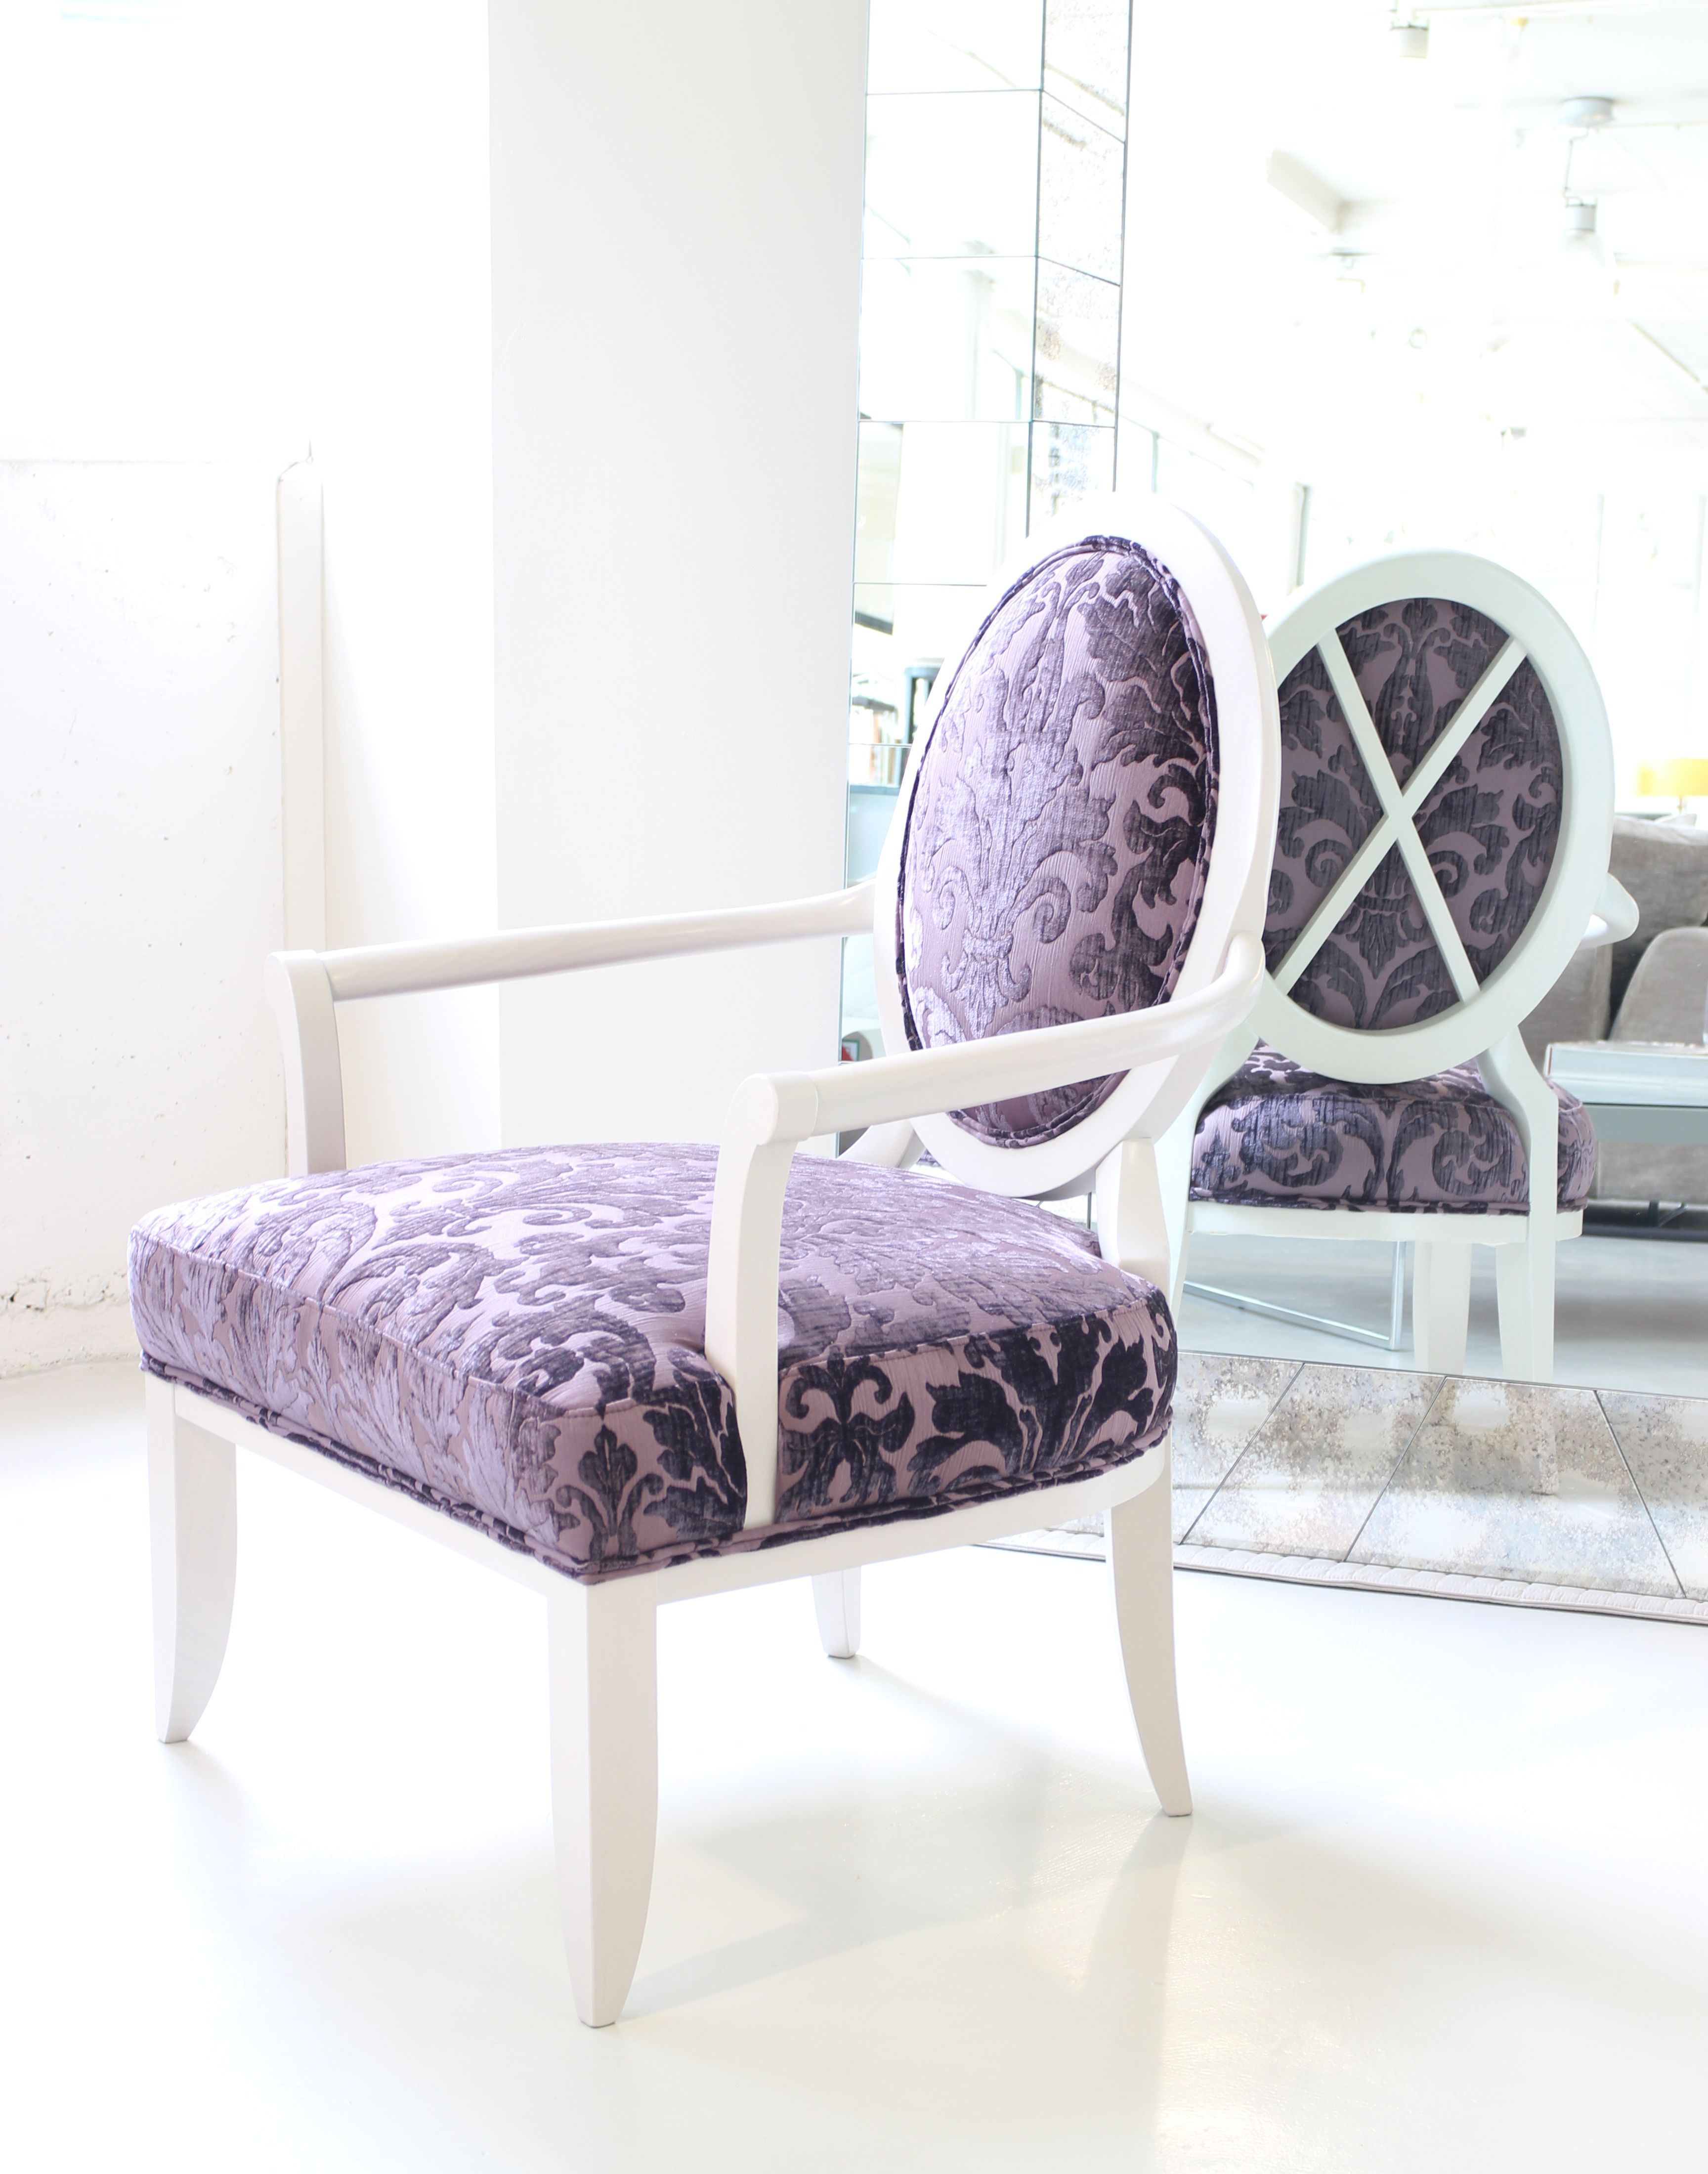 Imported into new zealand as a raw frame allowing you to have it finished and upholstered to your specifications available at sarsfield brooke